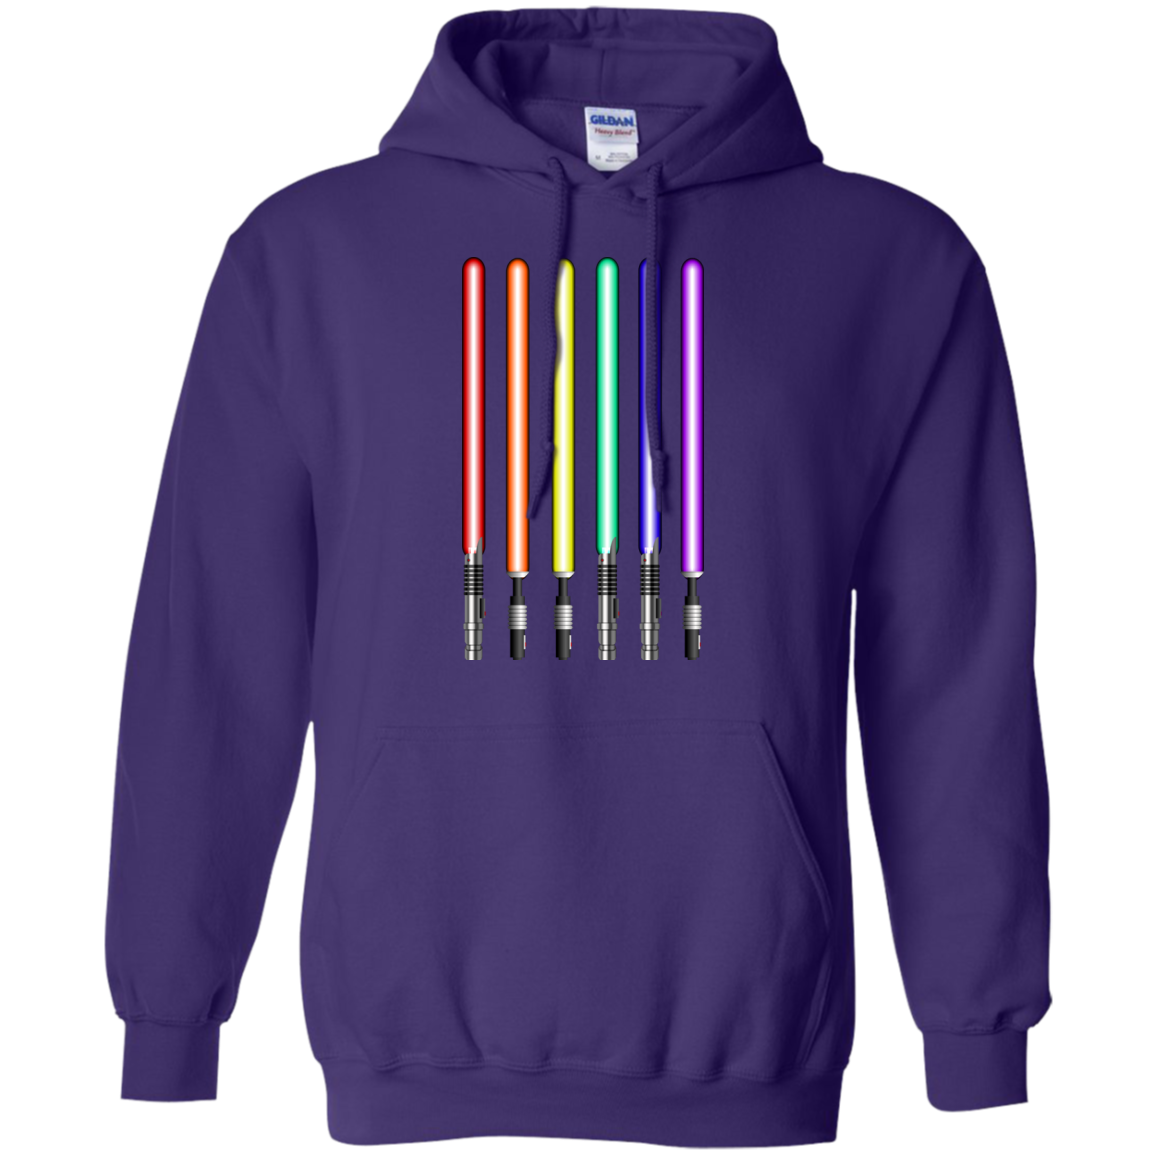 Star Wars Lightsaber Rainbow Shirt Tee Hoodies Tank Top